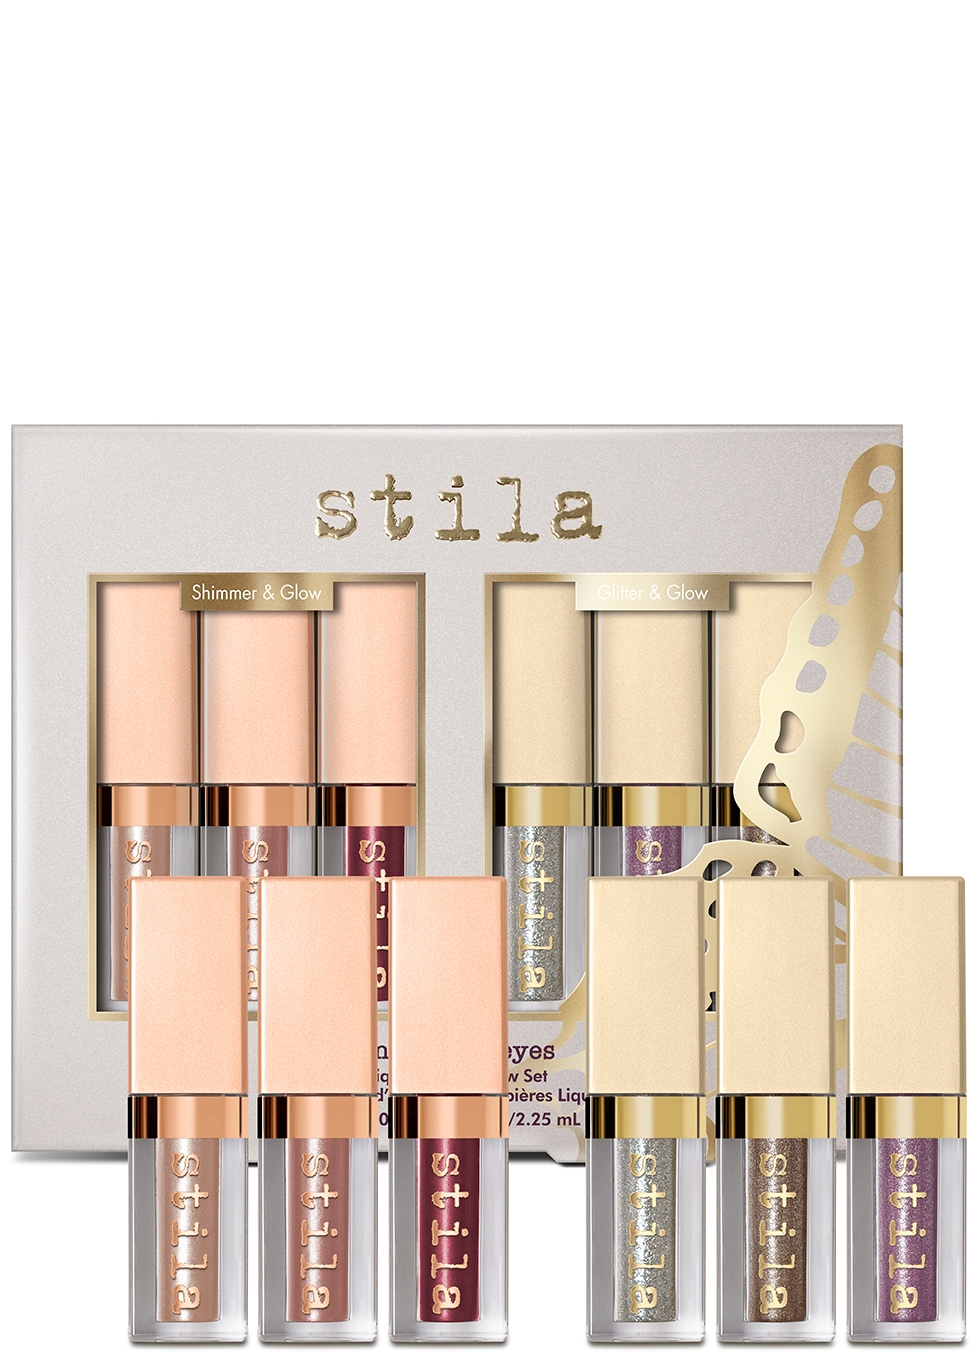 Enchanted Eyes Shimmer & Glow Liquid Eyeshadow Set - Stila